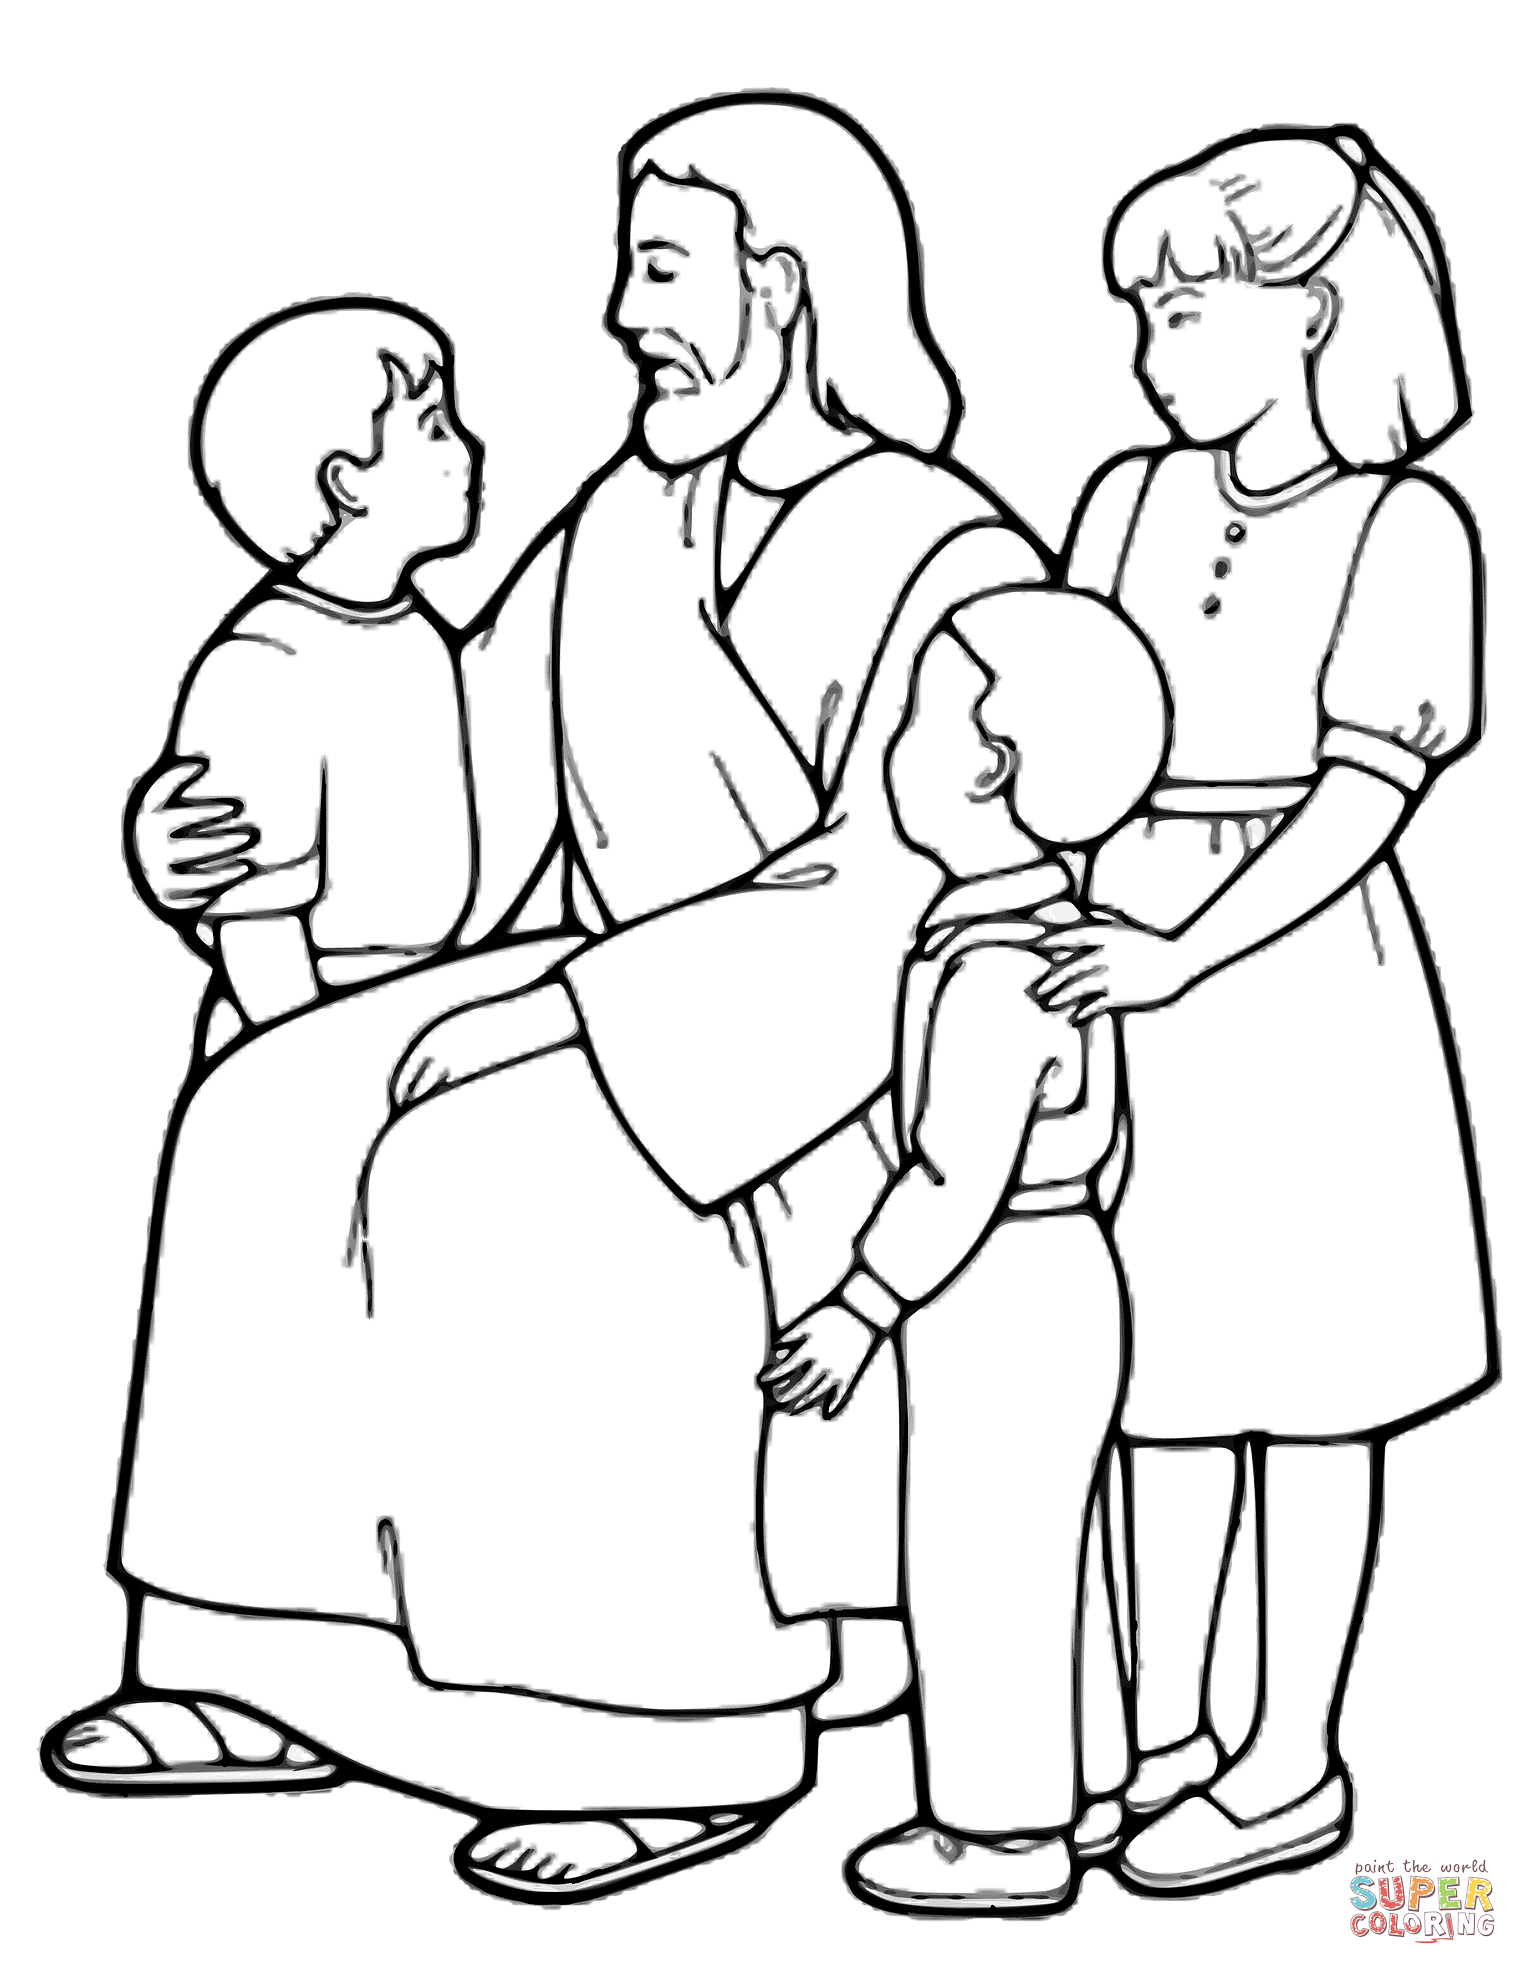 The Good Shepherd Coloring Page Jesus Is The Good Shepherd Coloring Page Free Printable Coloring Pages